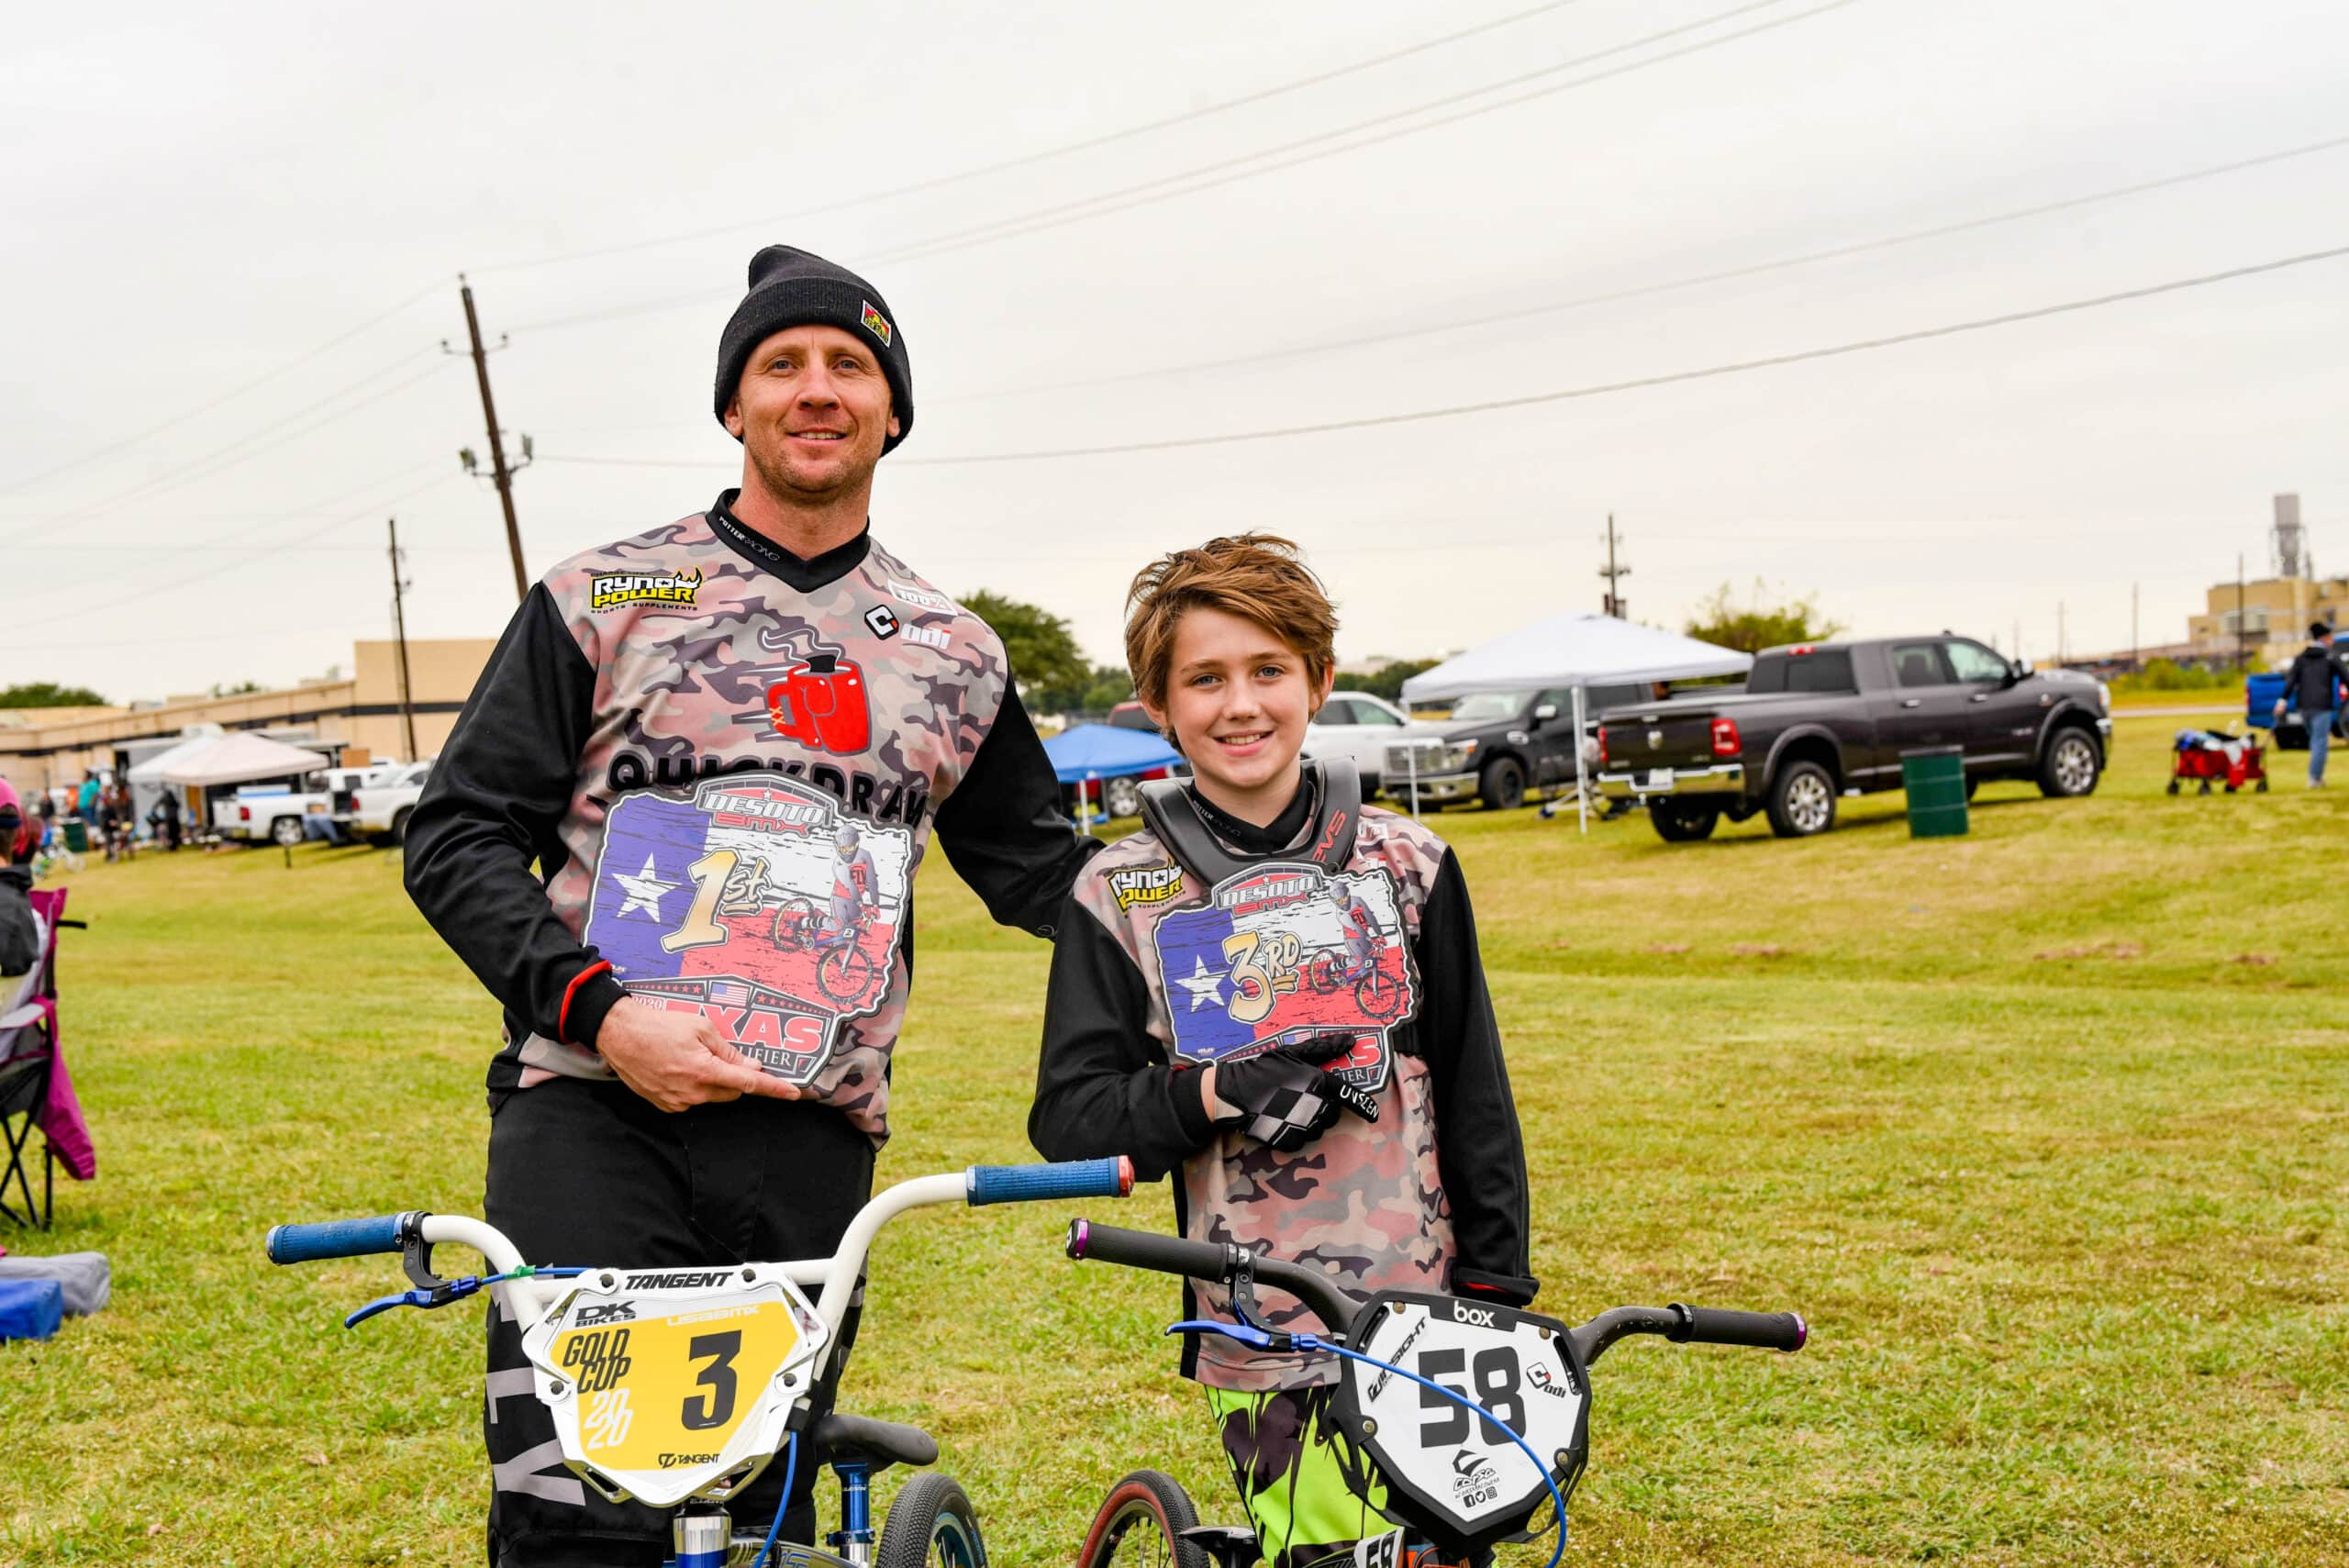 Man and boy showing trophies from BMX race